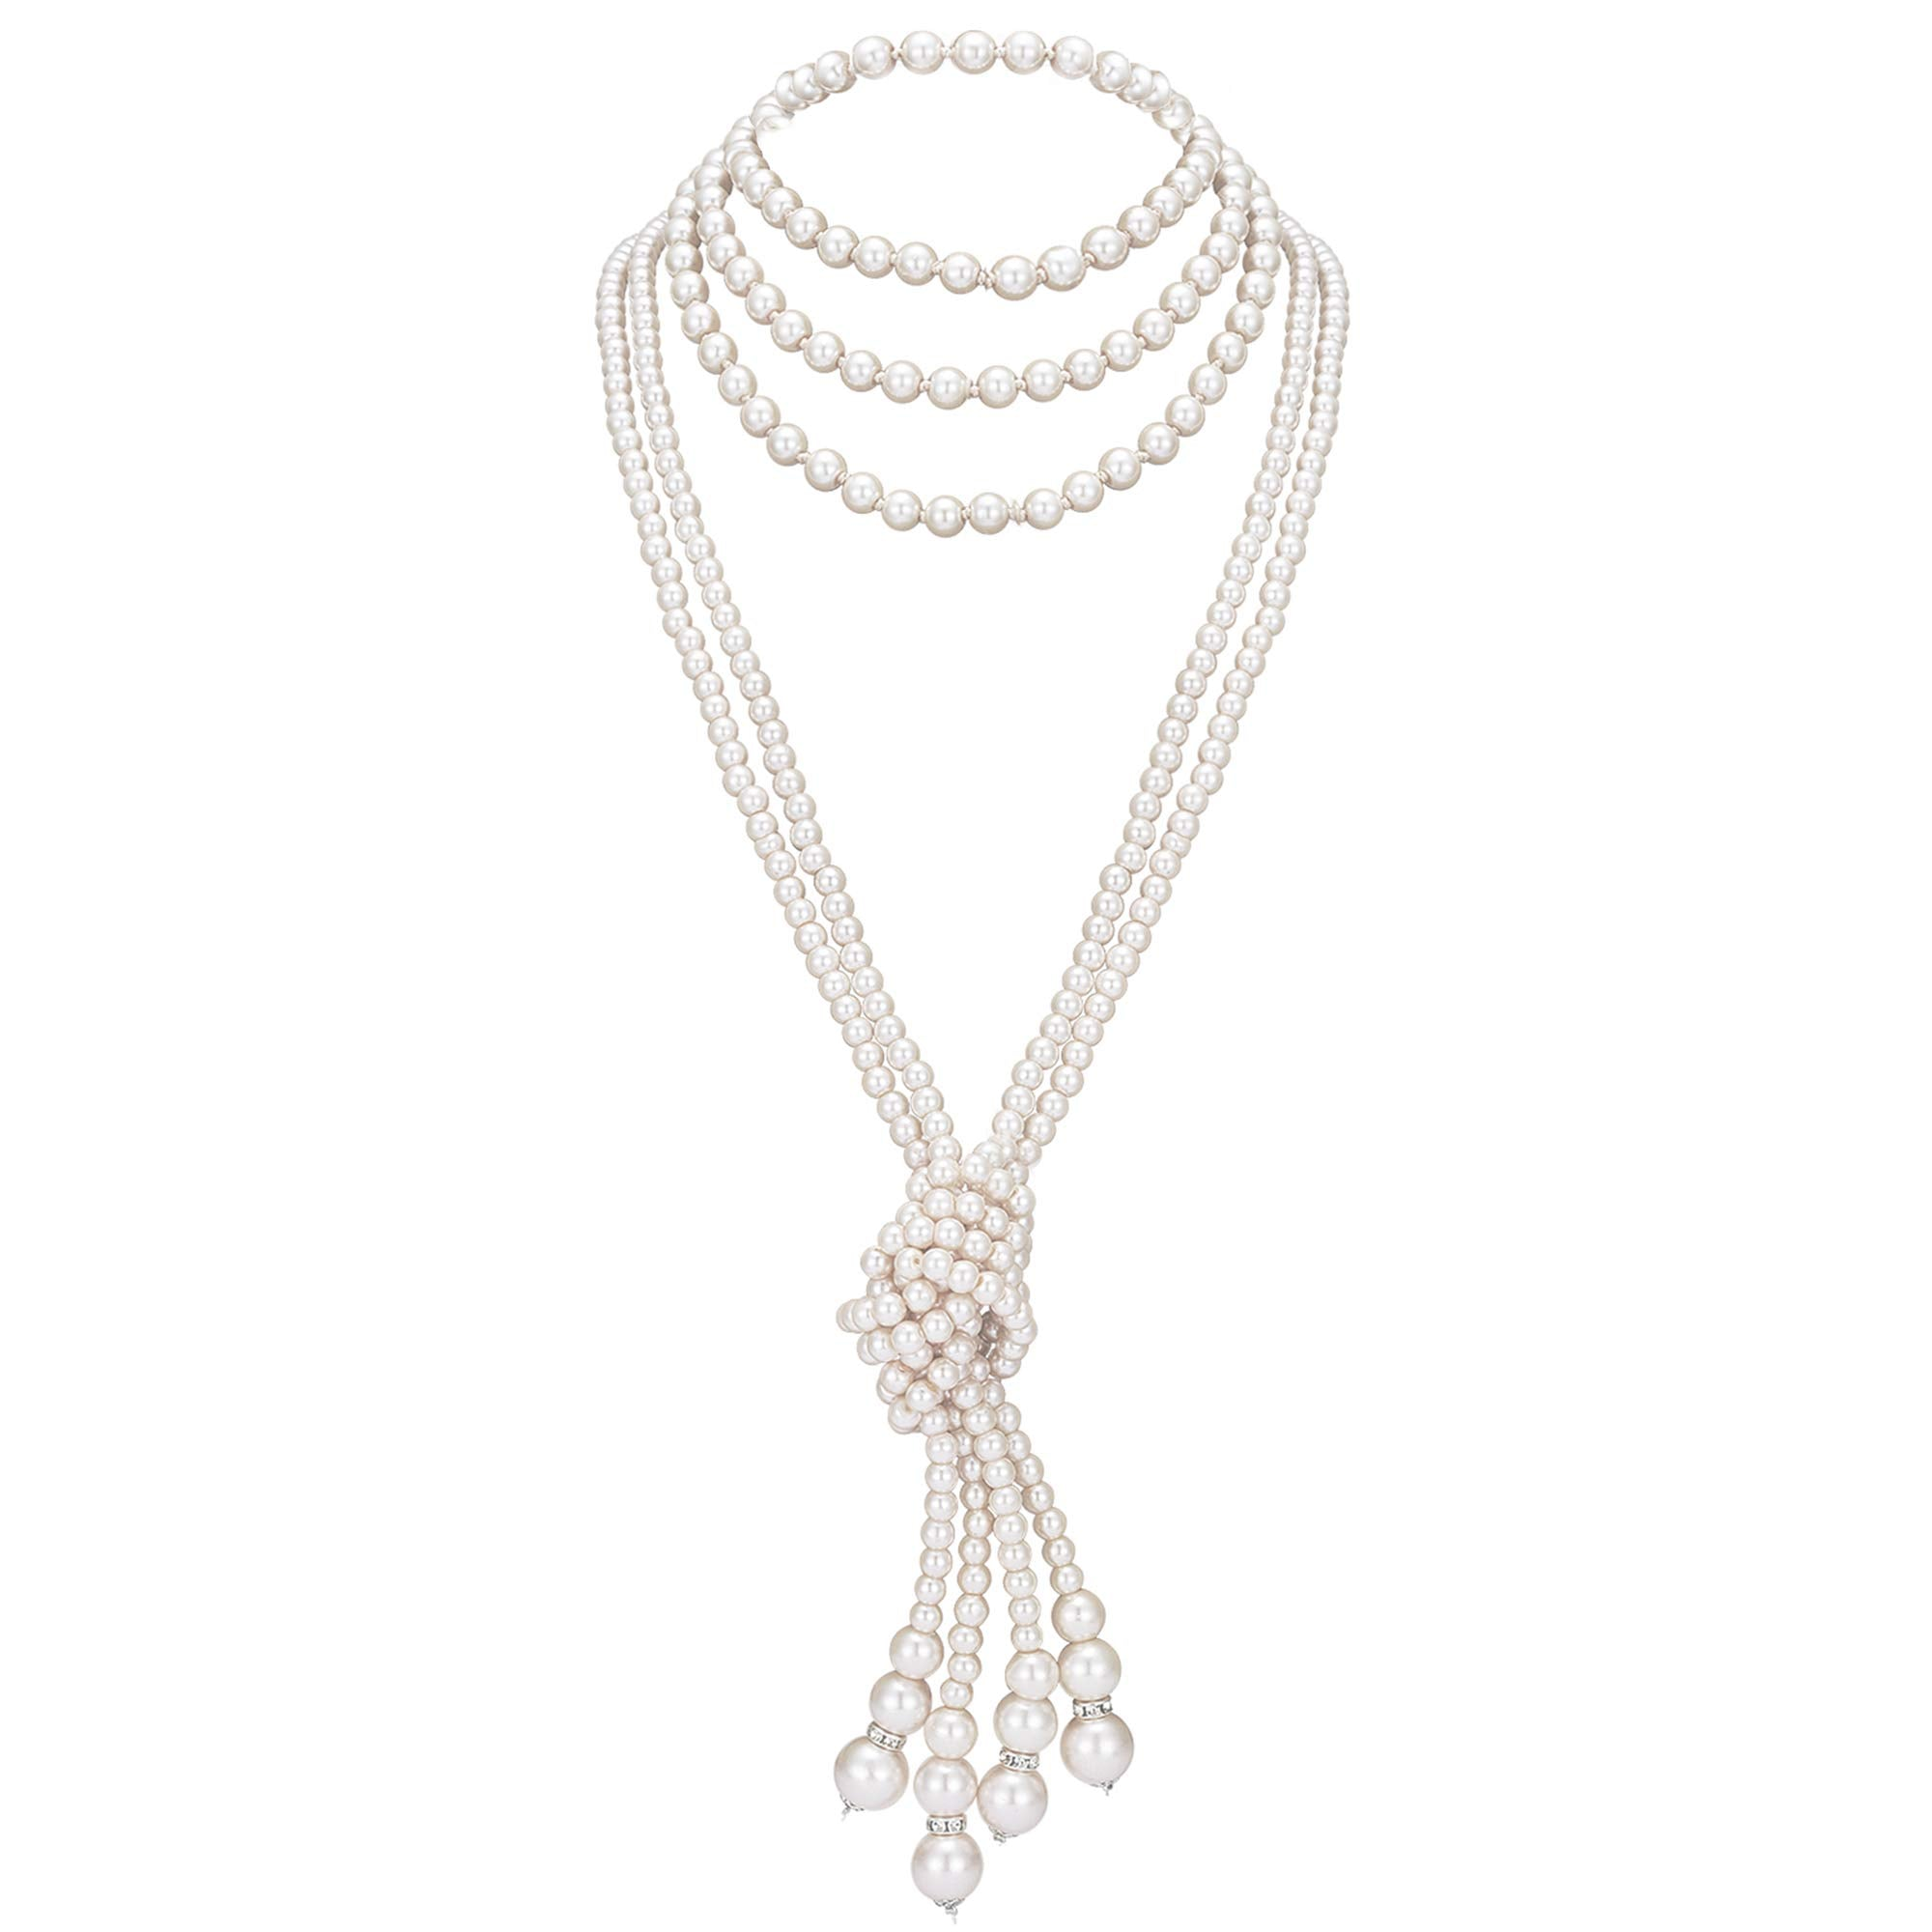 "BABEYOND 1920s Imitation Pearls Necklace Gatsby Long Knot Pearl Necklace 49"" and 59"" 20s Pearls 1920s Flapper Accessories (Knot Pearl Necklace2 + 59"" Necklace1)"